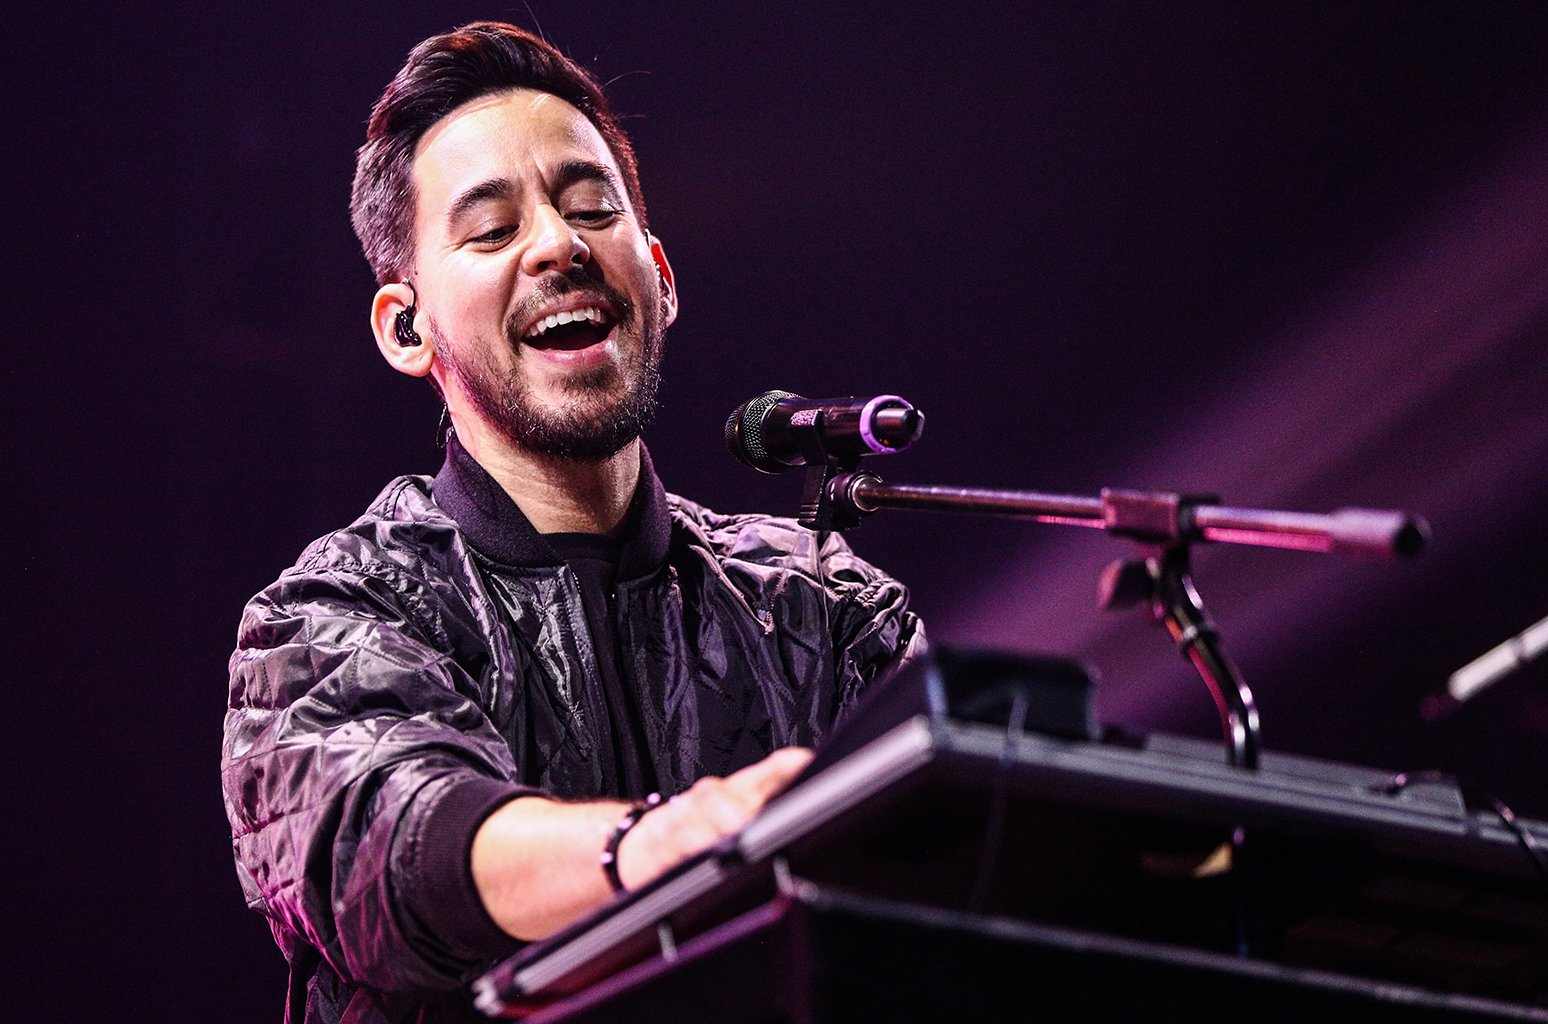 Linkin Park's Mike Shinoda will be playing a solo set at Reading & Leeds Festival https://t.co/lQ0TuFmBA7 https://t.co/zjmd5nHqq4